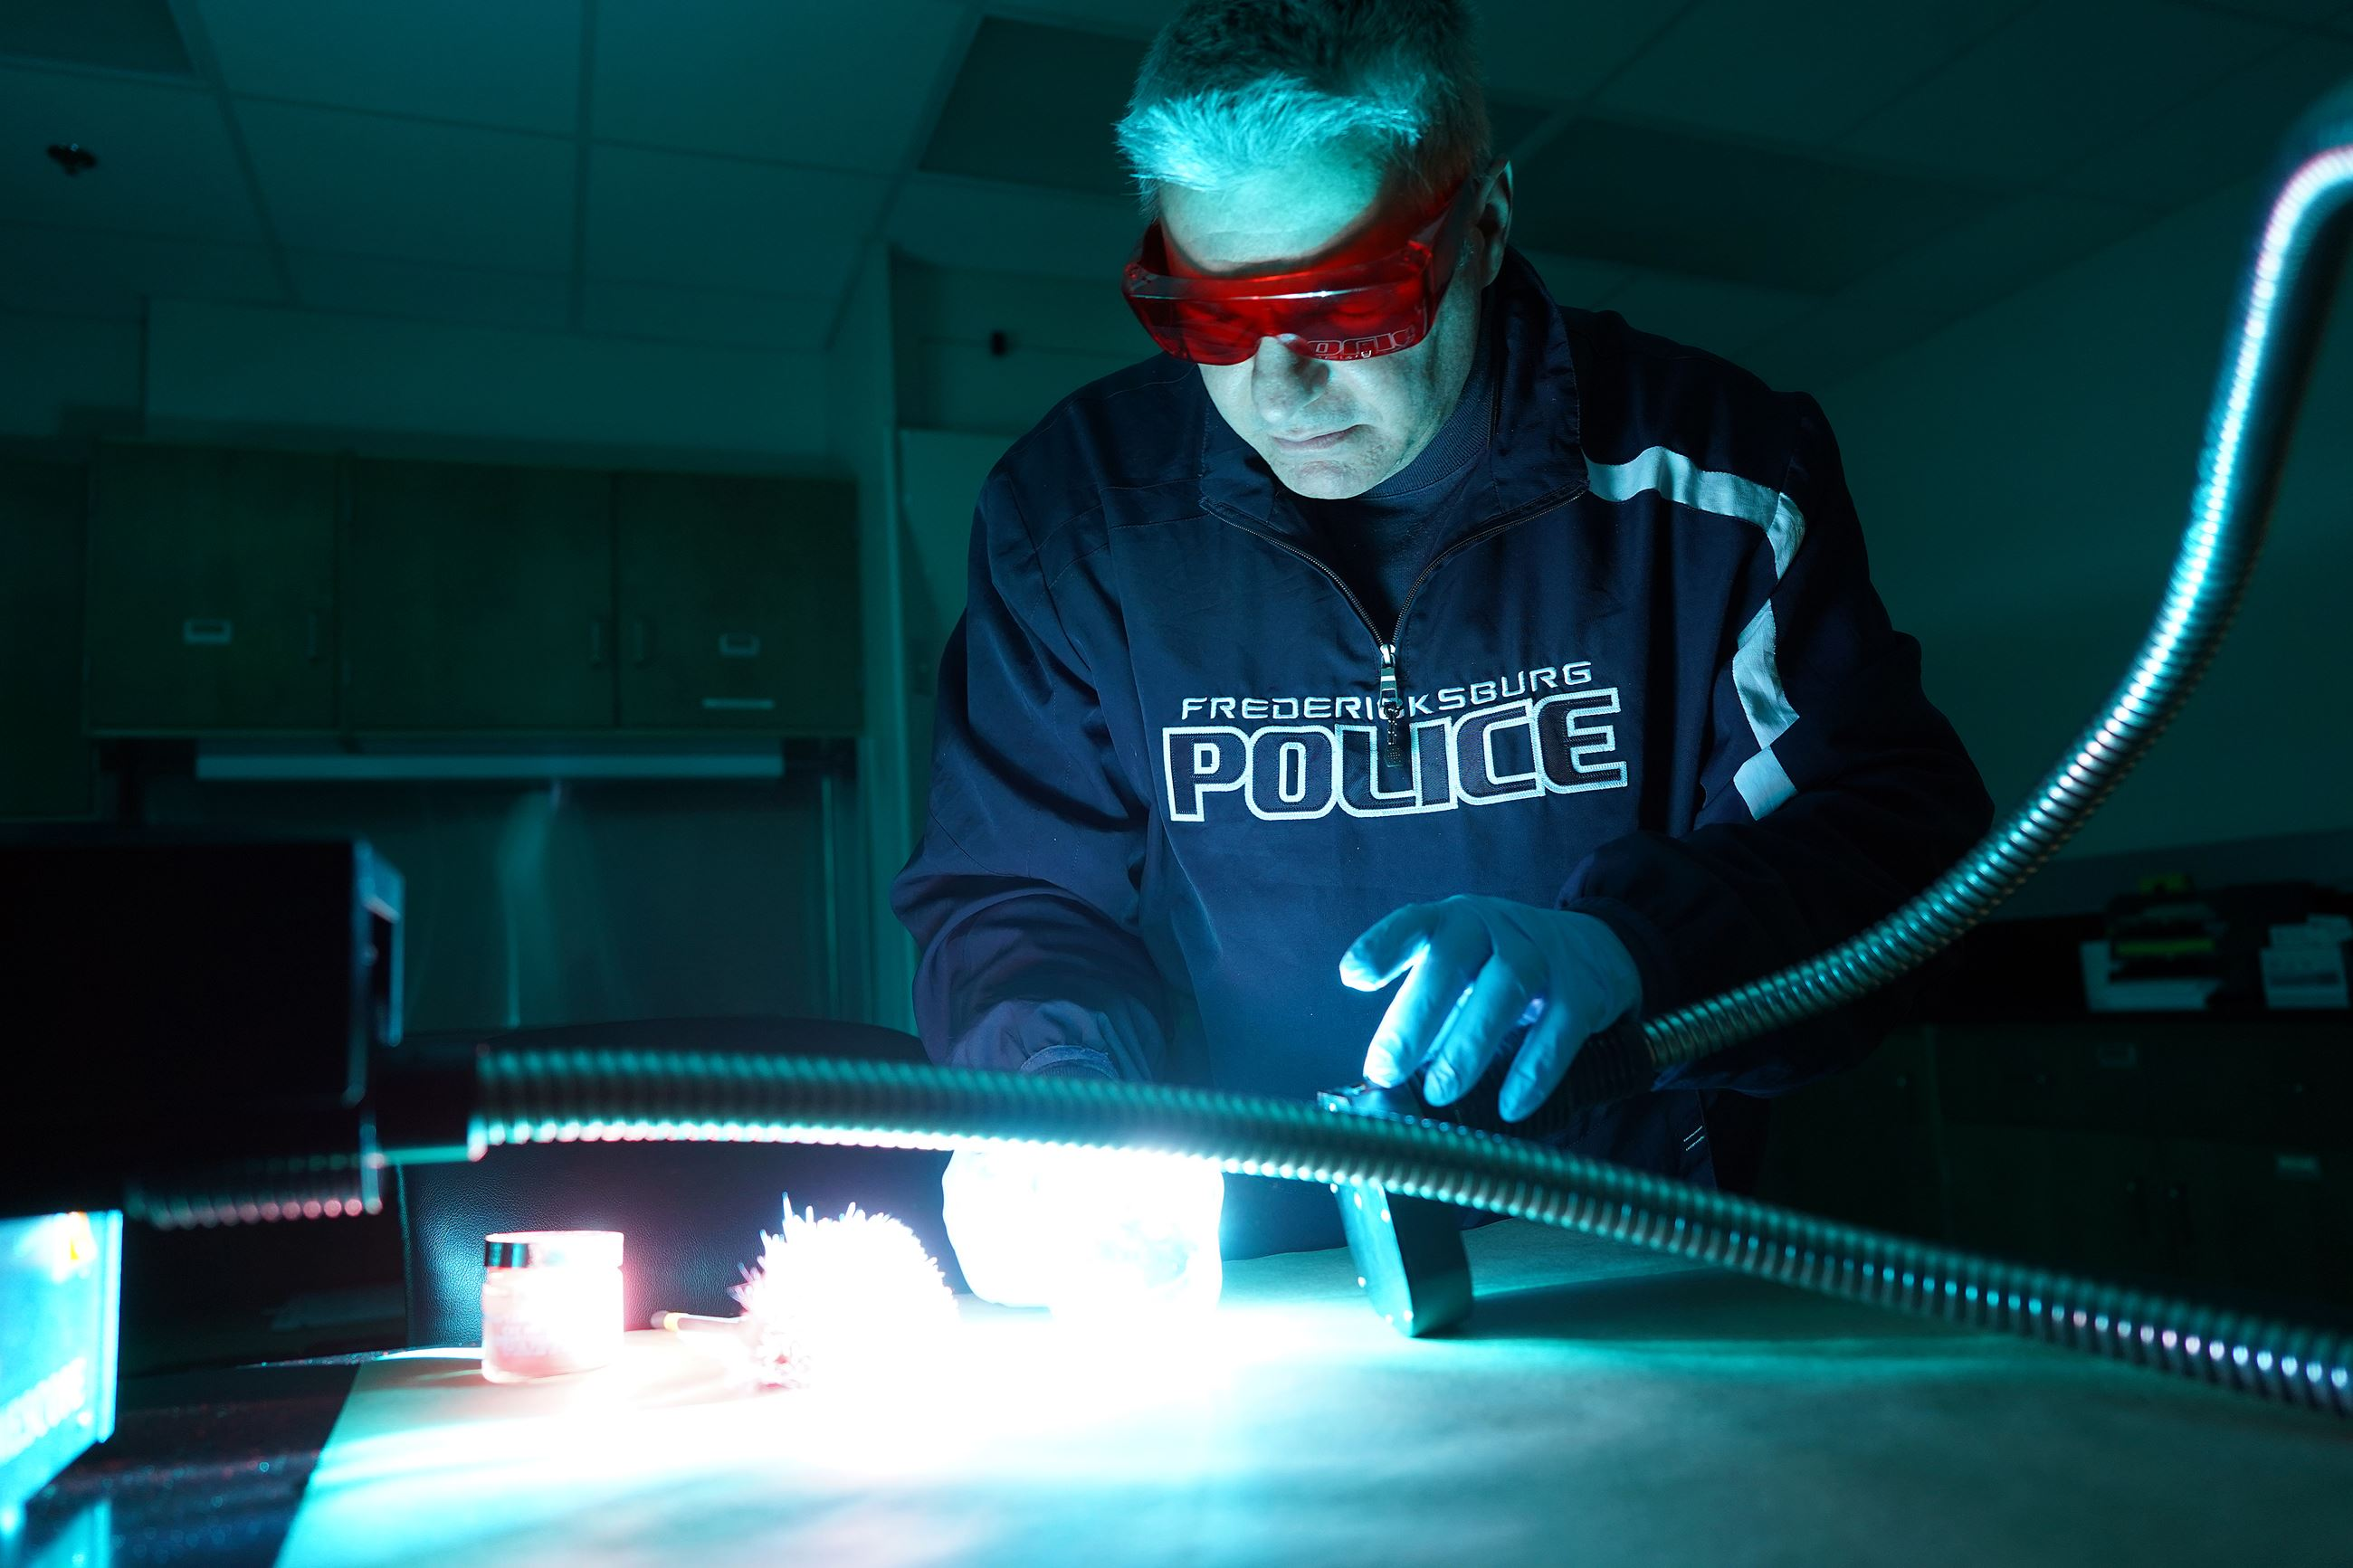 cop doing forensic studies